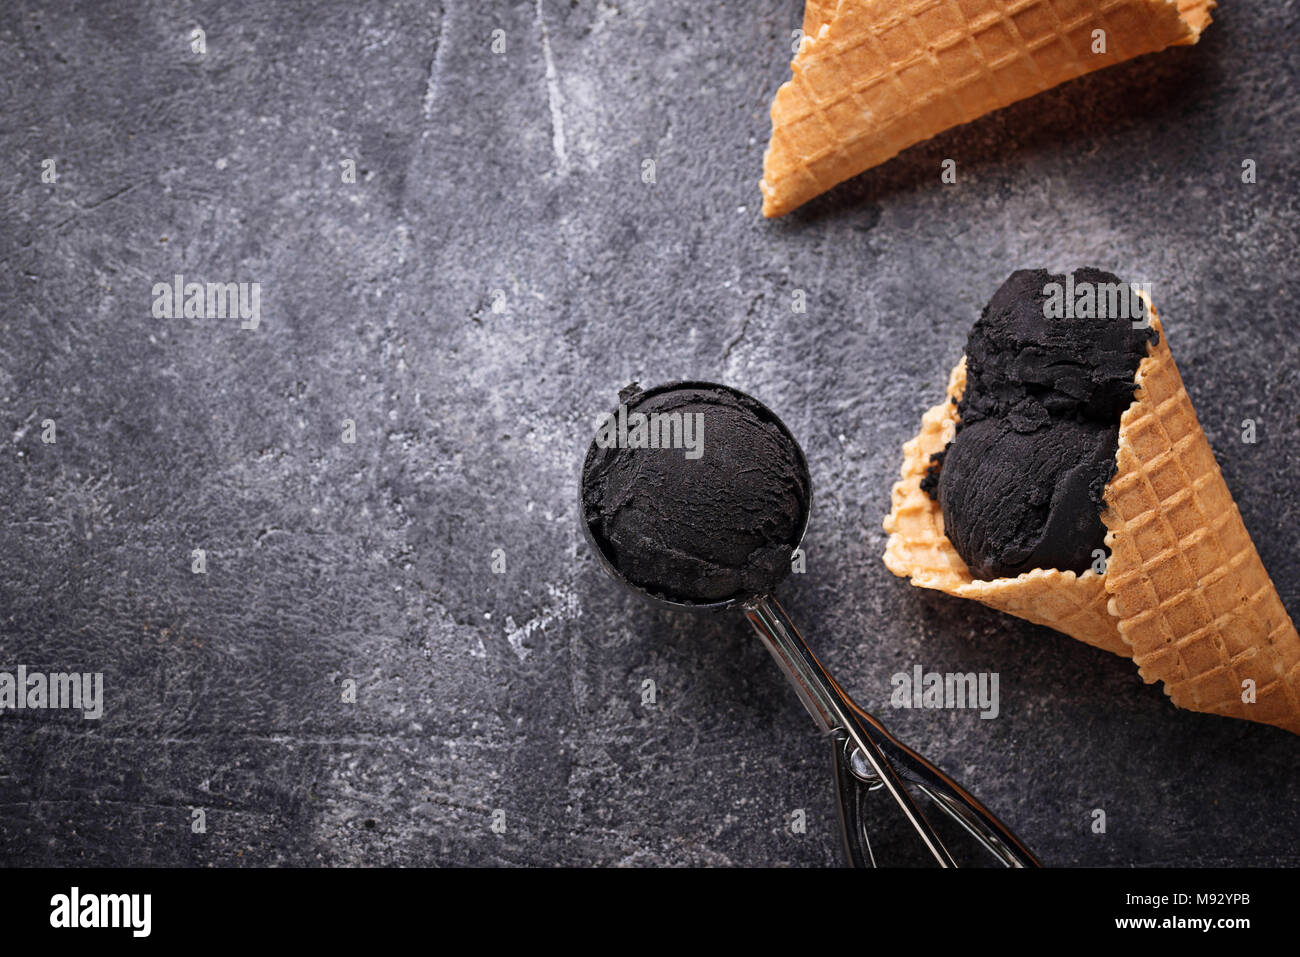 Black ice cream. Trendy food - Stock Image